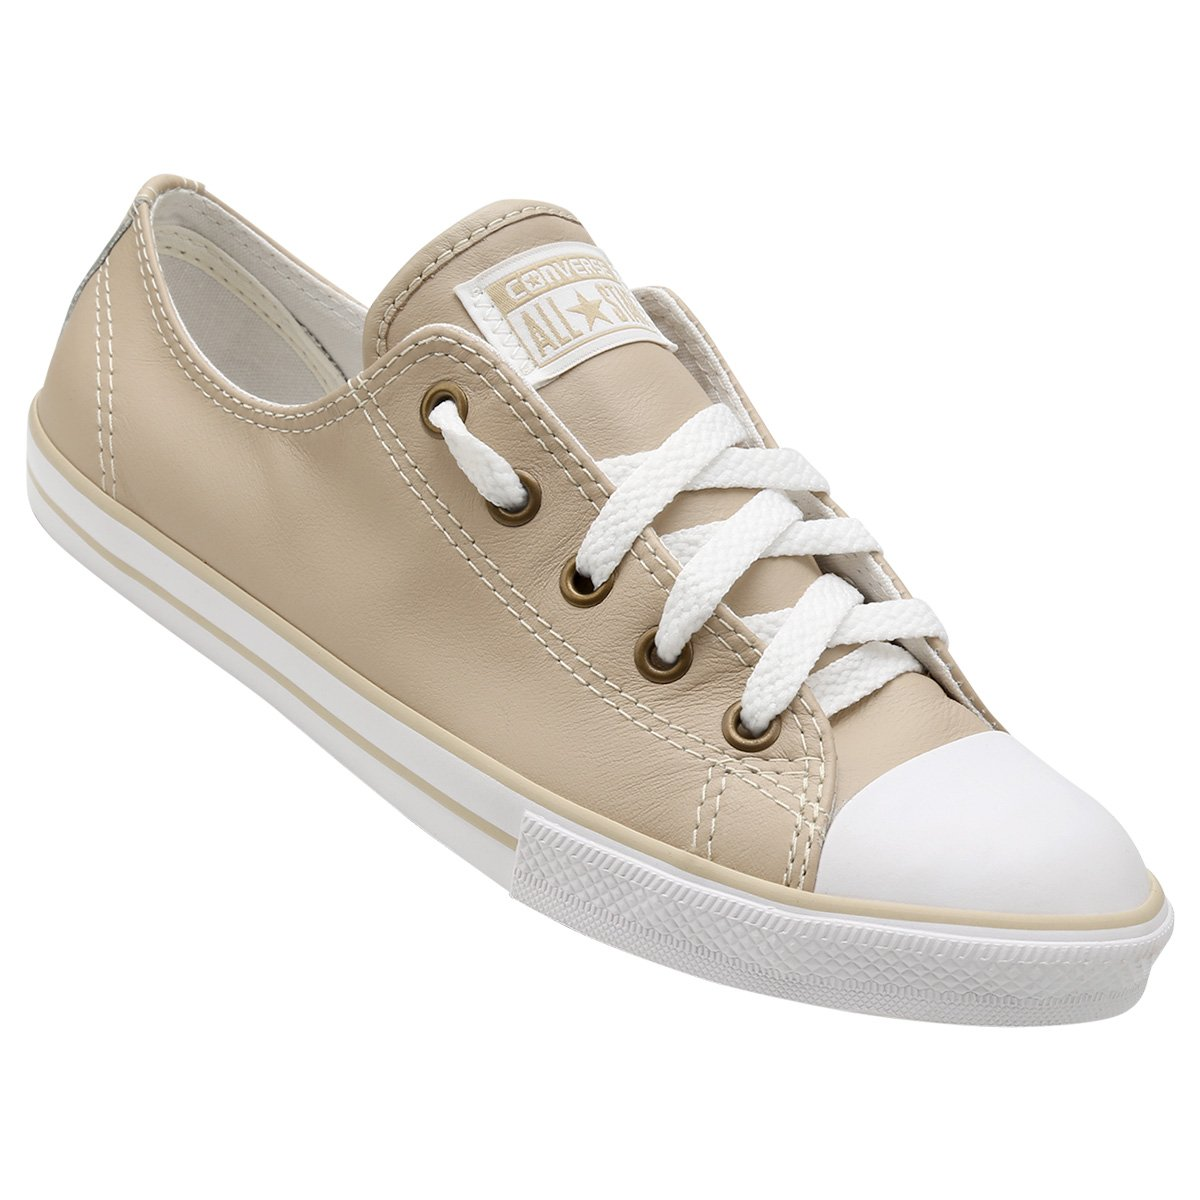 b3142c7cf04 Tênis Couro Converse All Star Ct As Dainty Leather Ox Feminino - Compre  Agora